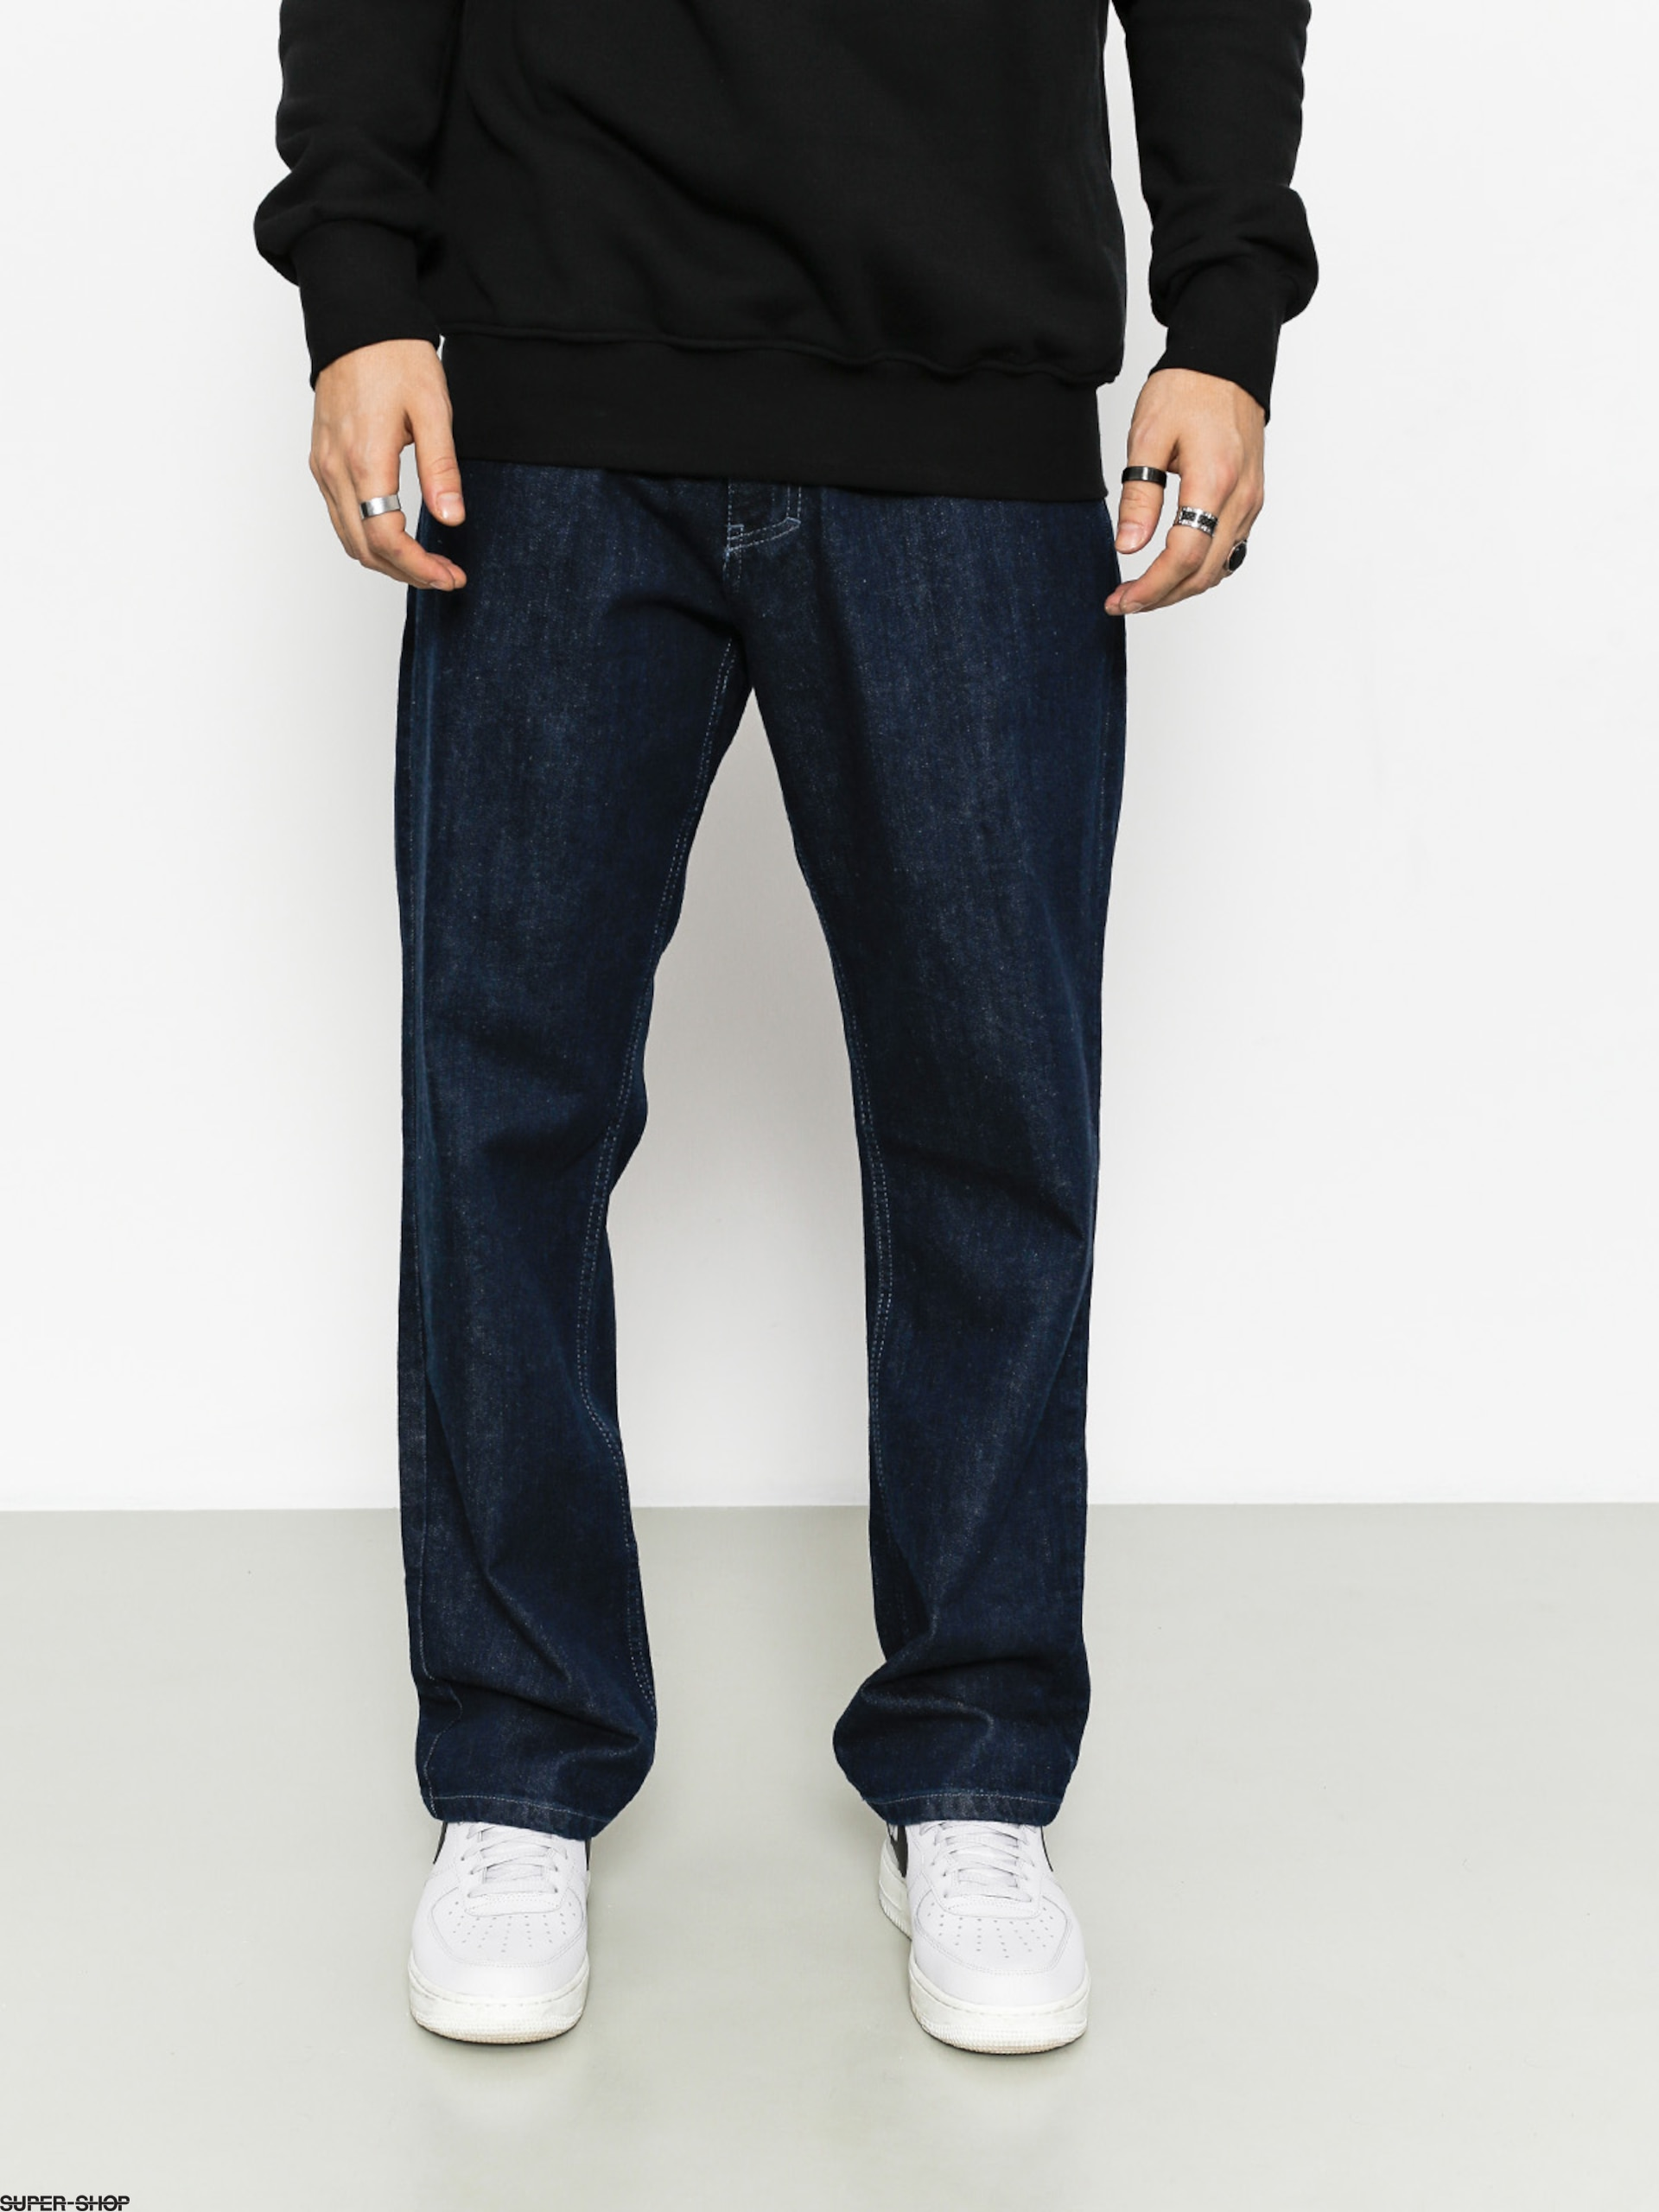 El Polako Pants Ep Regular Outline Jeans (dark)